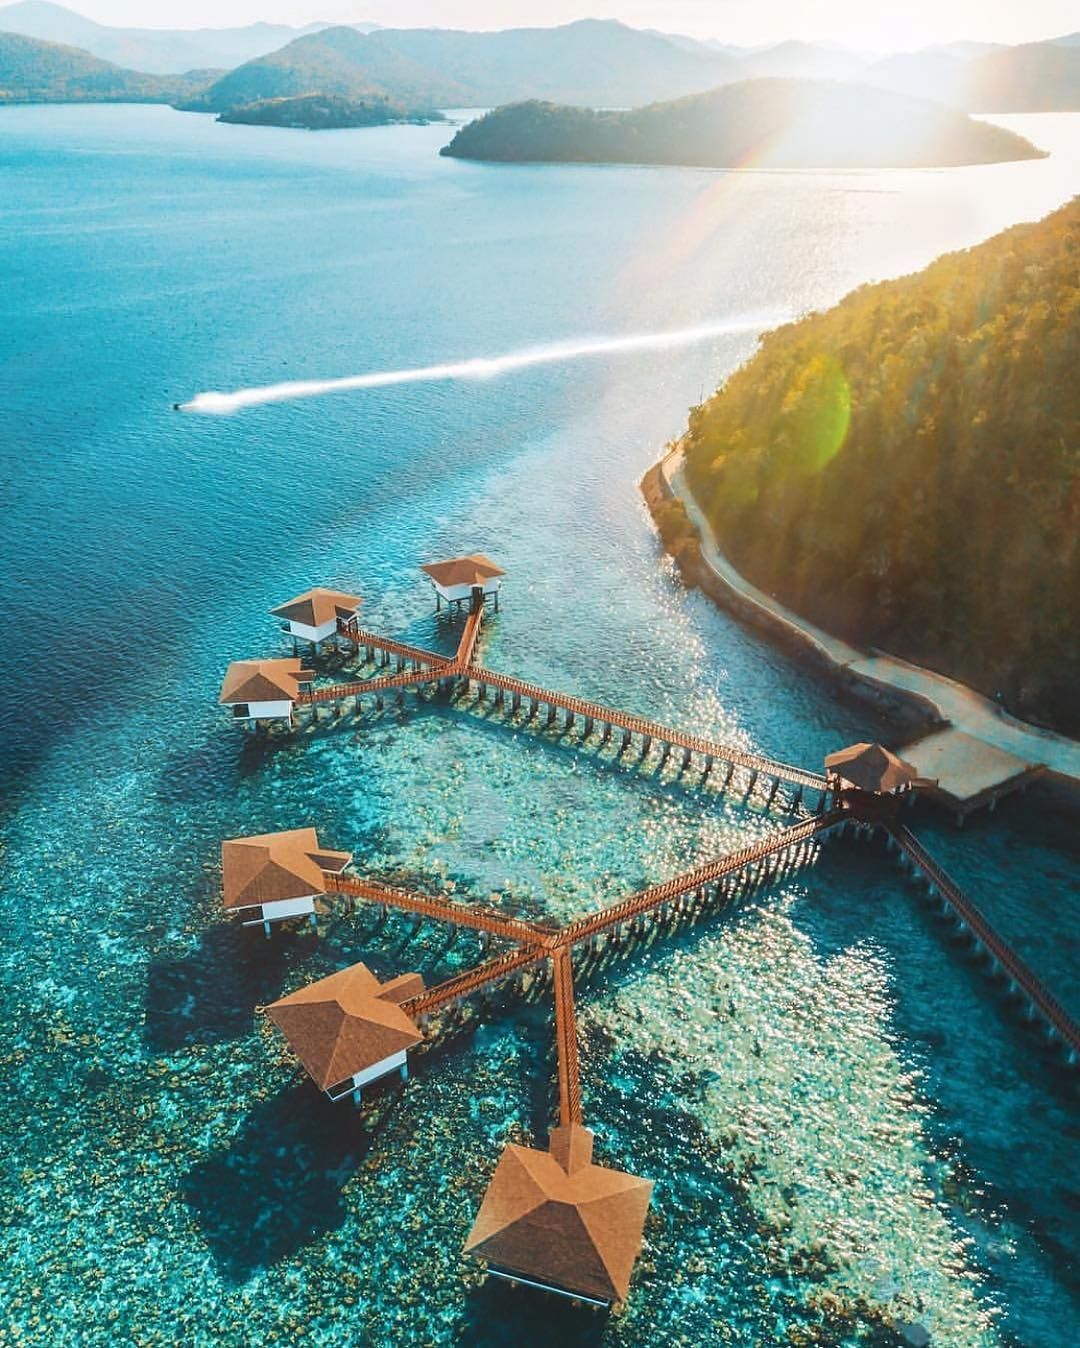 If You Can Bring One Person To This Resort Who Would It Be Tag